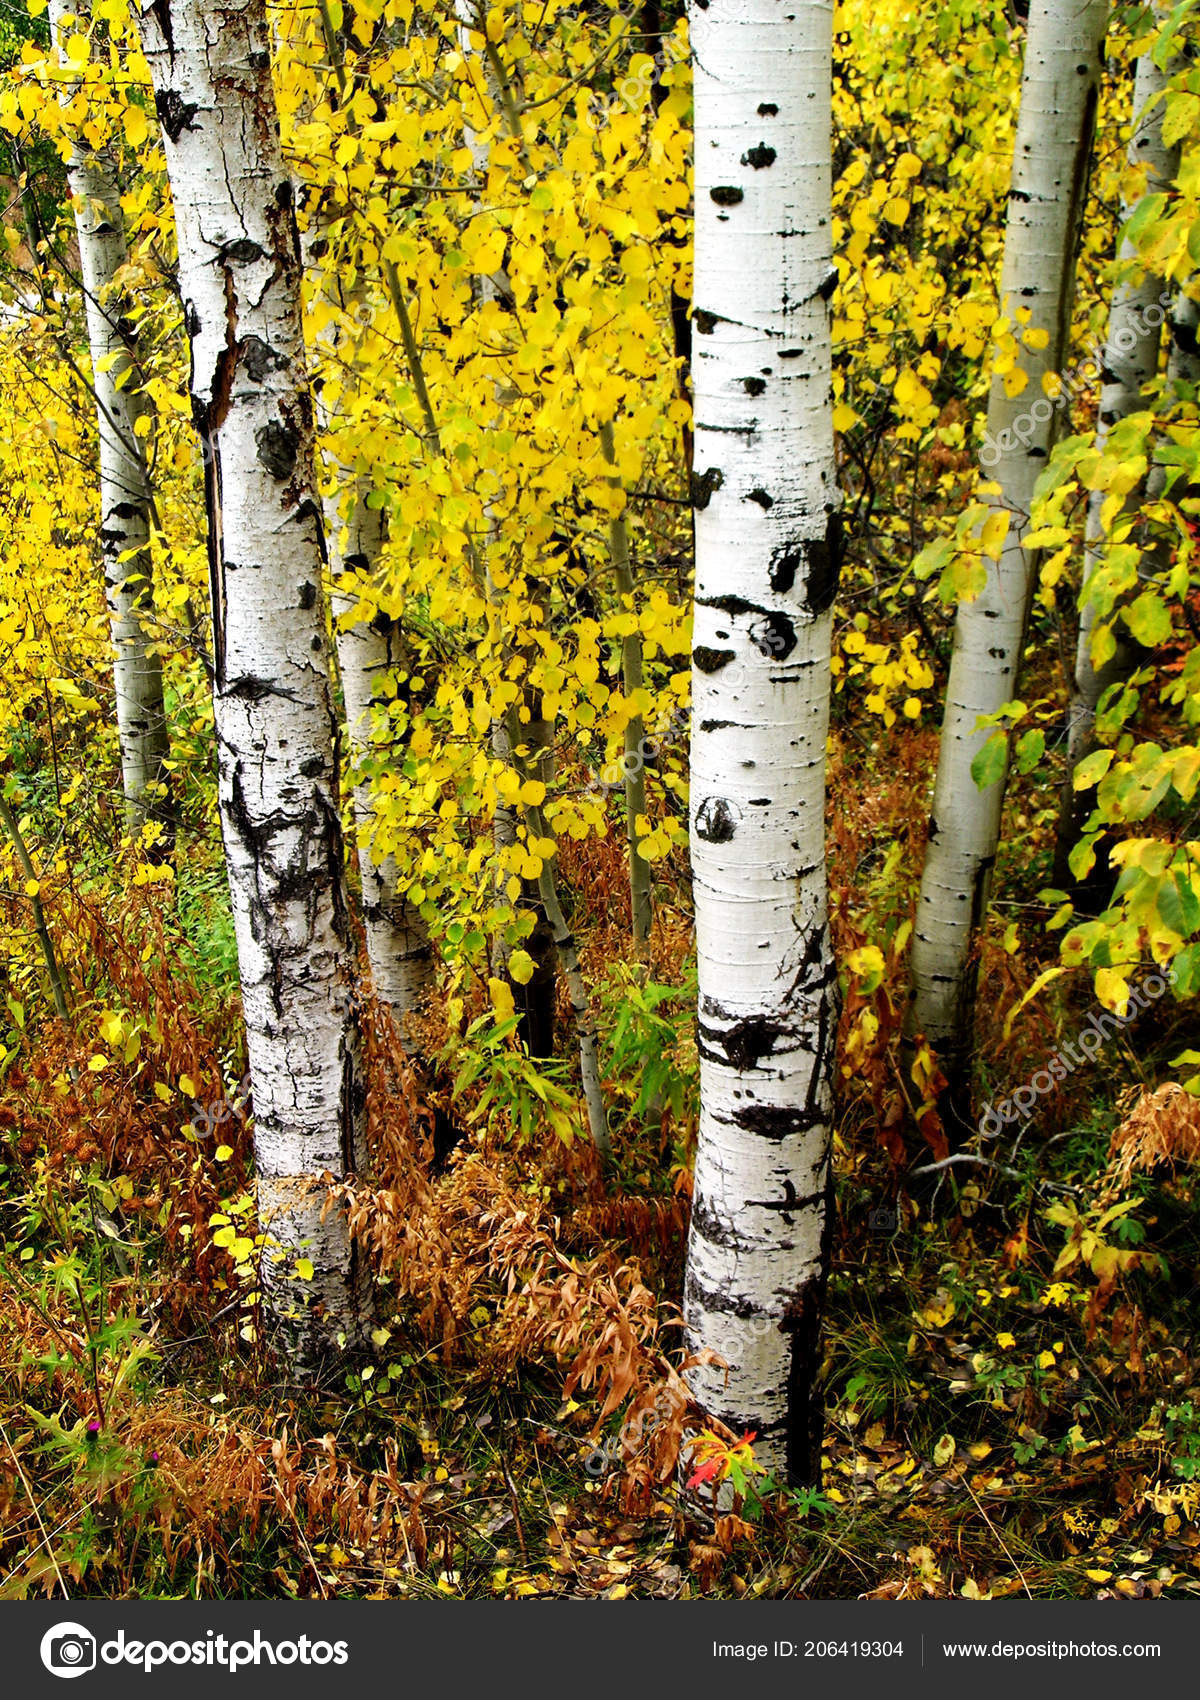 Pictures Birch Trees In The Fall Fall Birch Trees Autumn Leaves Background Details Stock Photo C Eric1513 206419304